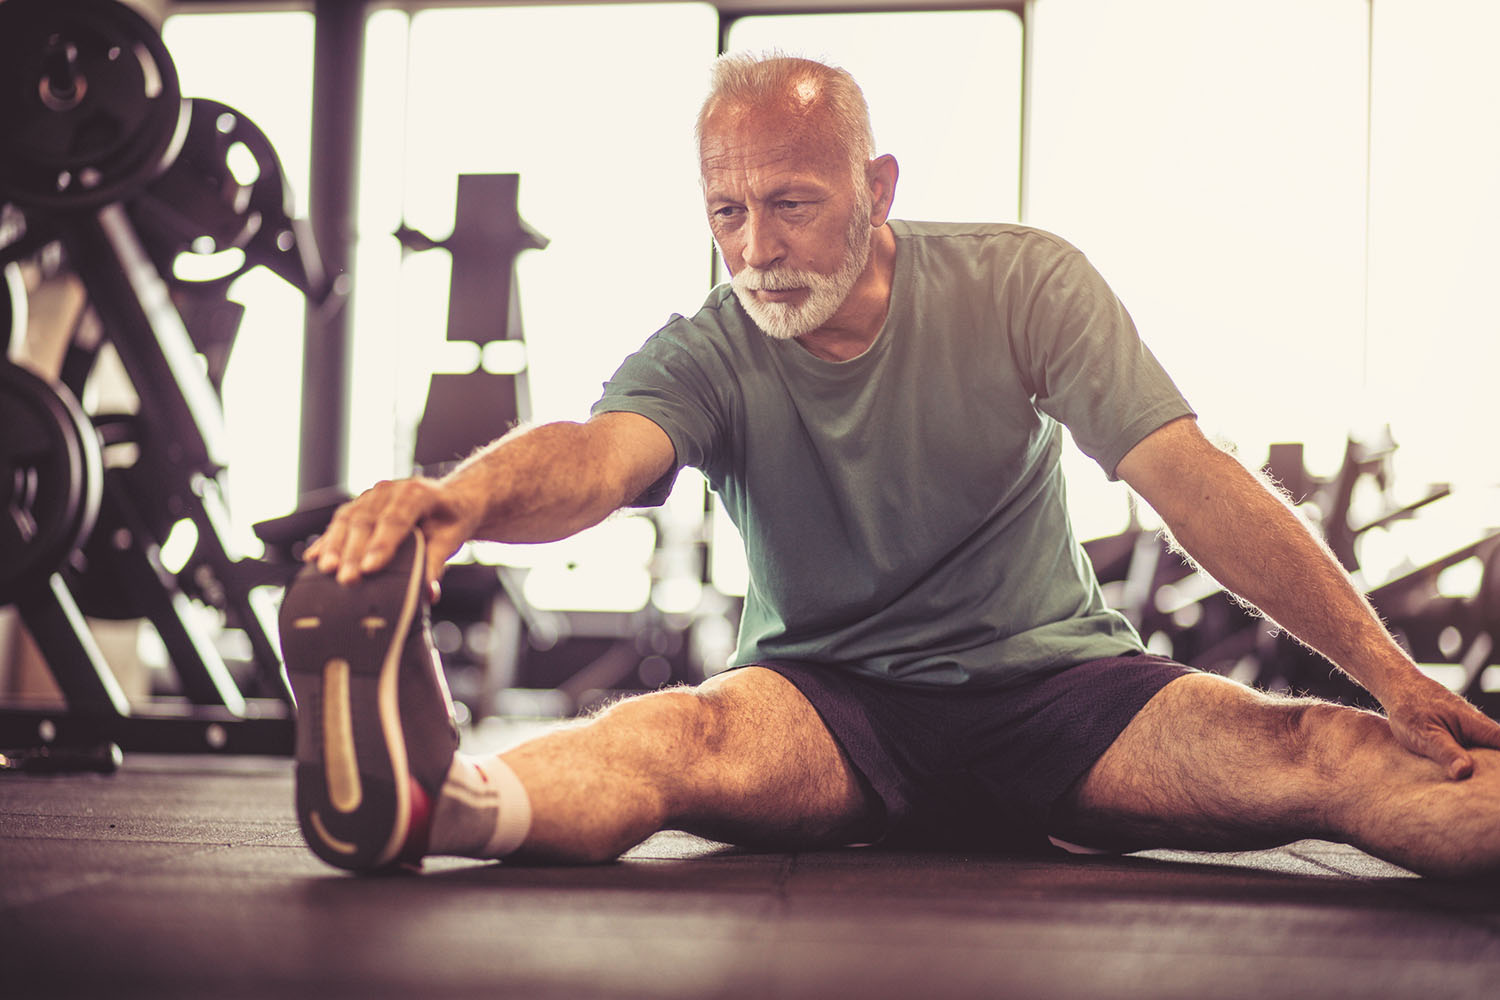 a8b53307fb19 Flexibility can decline as you age and raise your risk of injury. A daily  stretching routine can help.